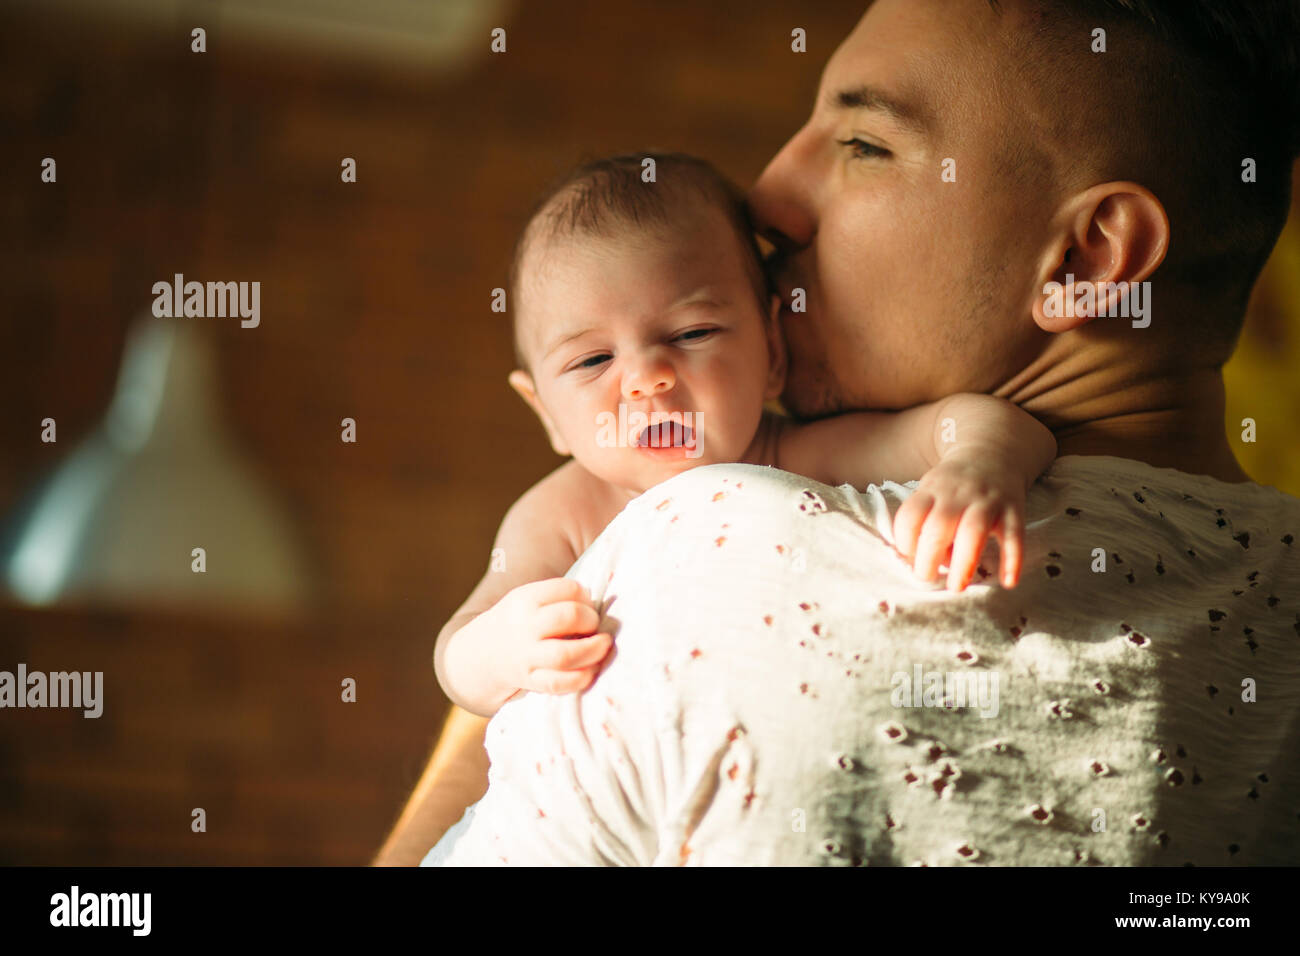 young father holding his newborn baby son - Stock Image